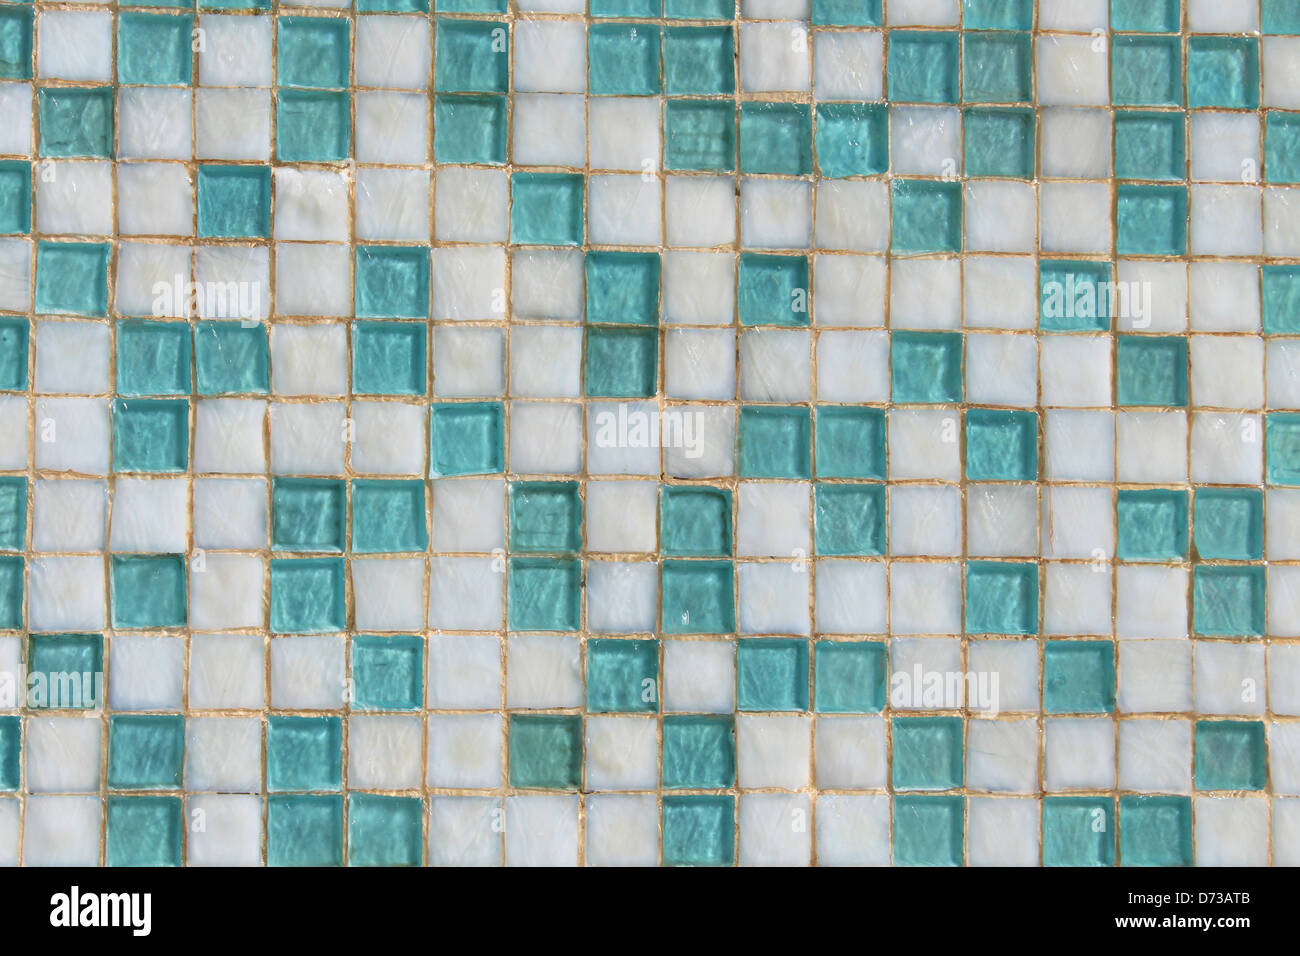 Background of teal blue and white ceramic small square tiled wall ...